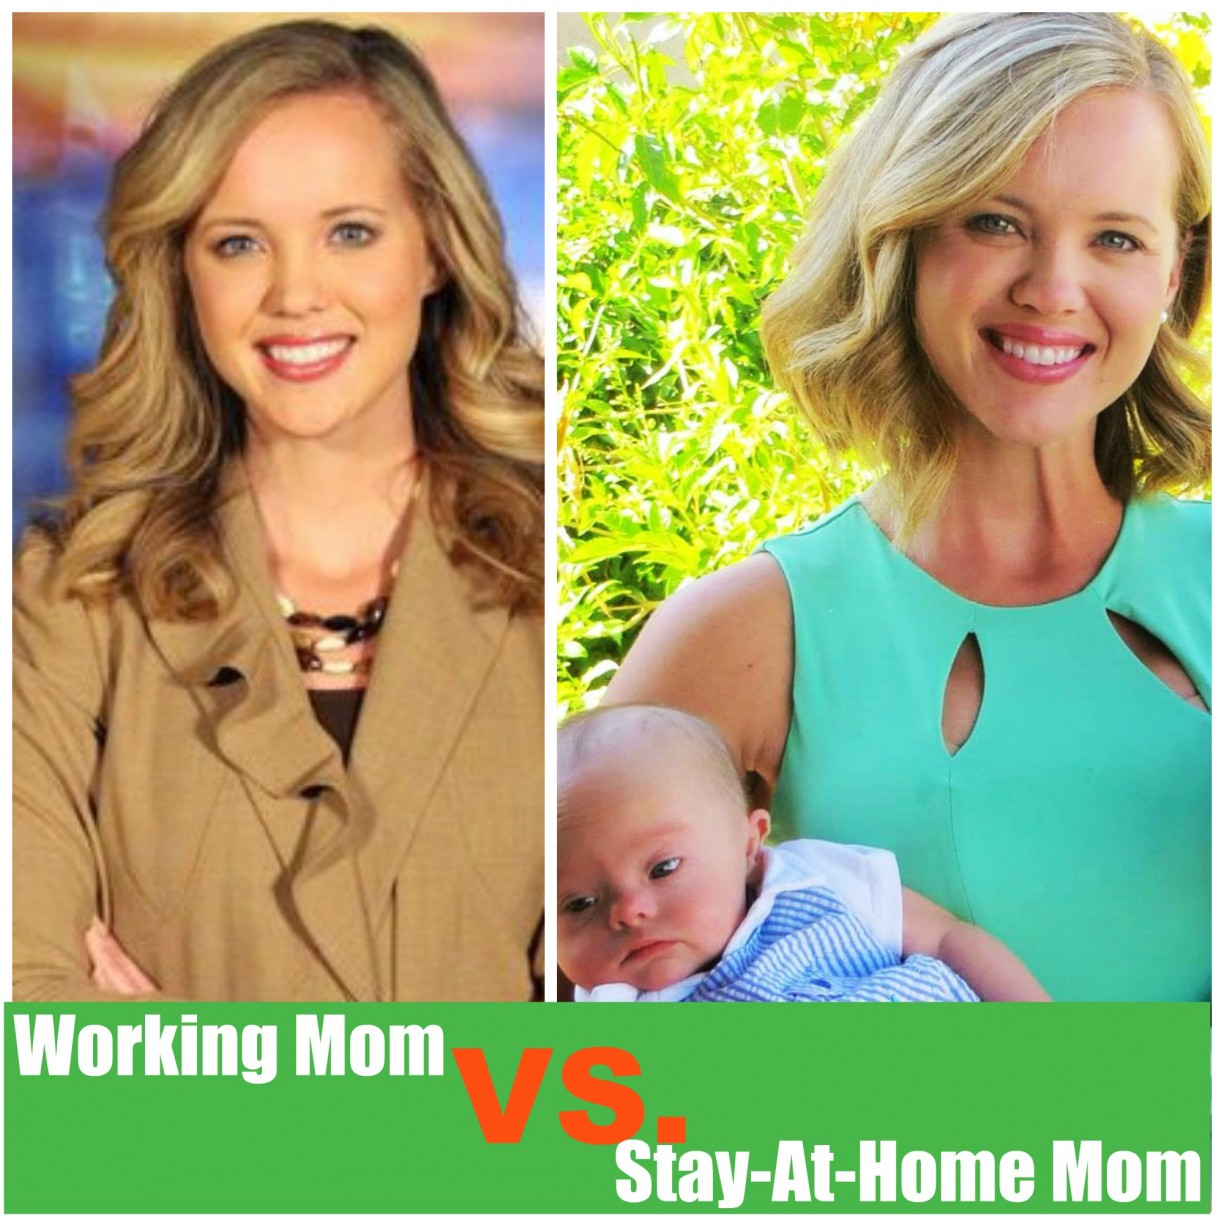 working moms vs stay at home moms essay We will write a custom essay sample on working mom vs stay at home mom or any similar topic specifically for you do not wasteyour time hire writer can being a home maker be viewed as a career central idea: a home maker plays a vital role in the family setting and in society there [.